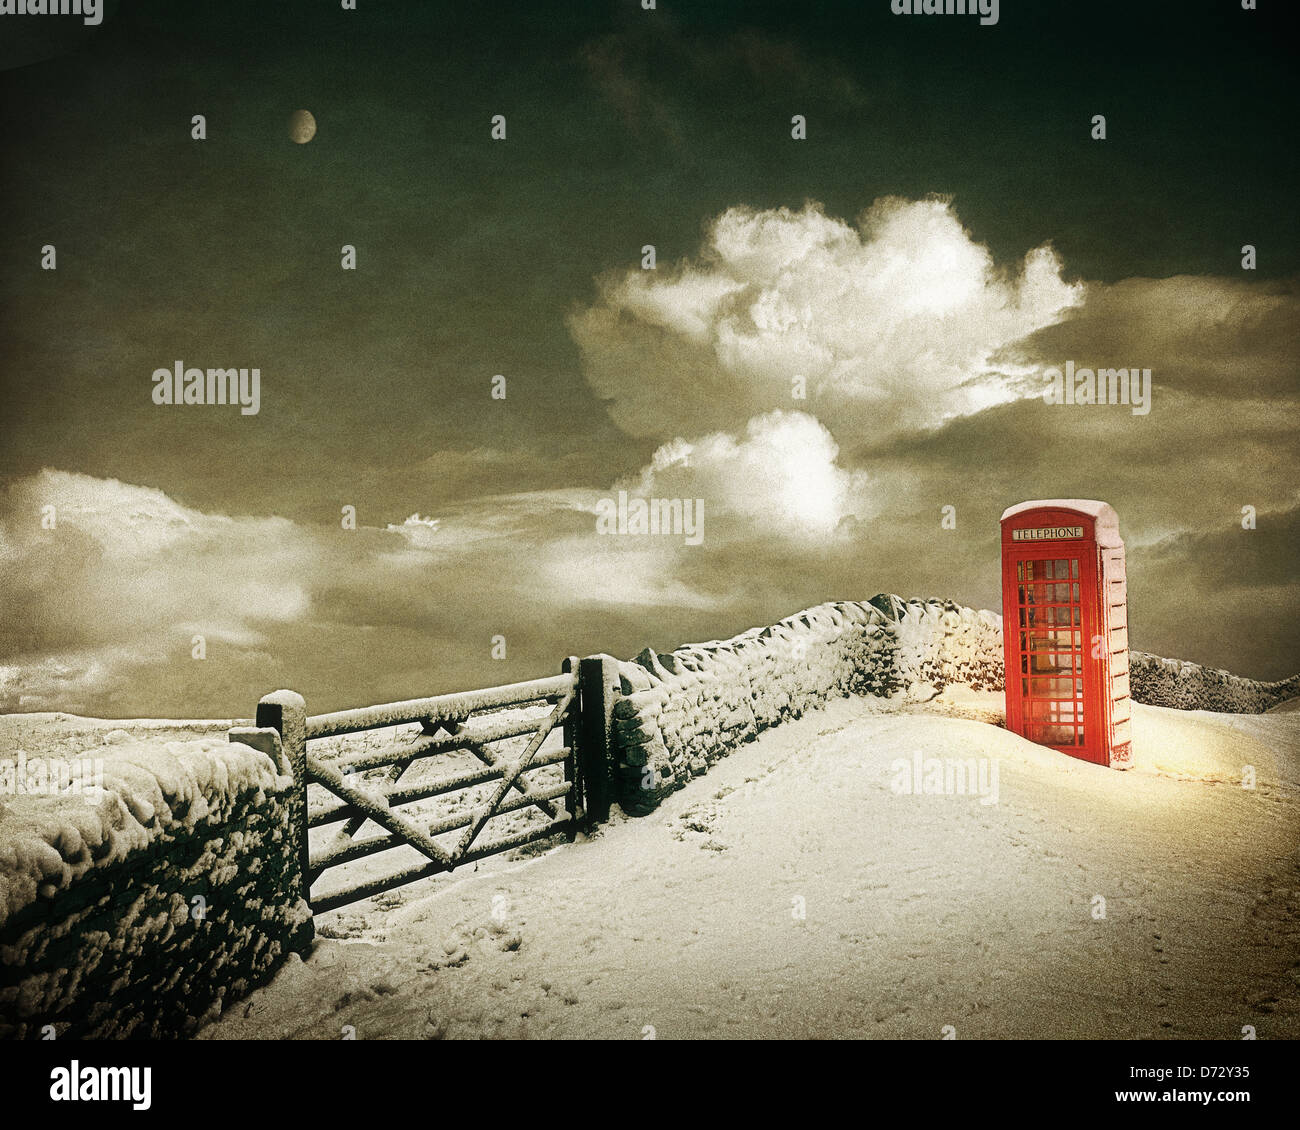 GB - GLOUCESTERSHIRE: Winter in the Cotswolds - Stock Image